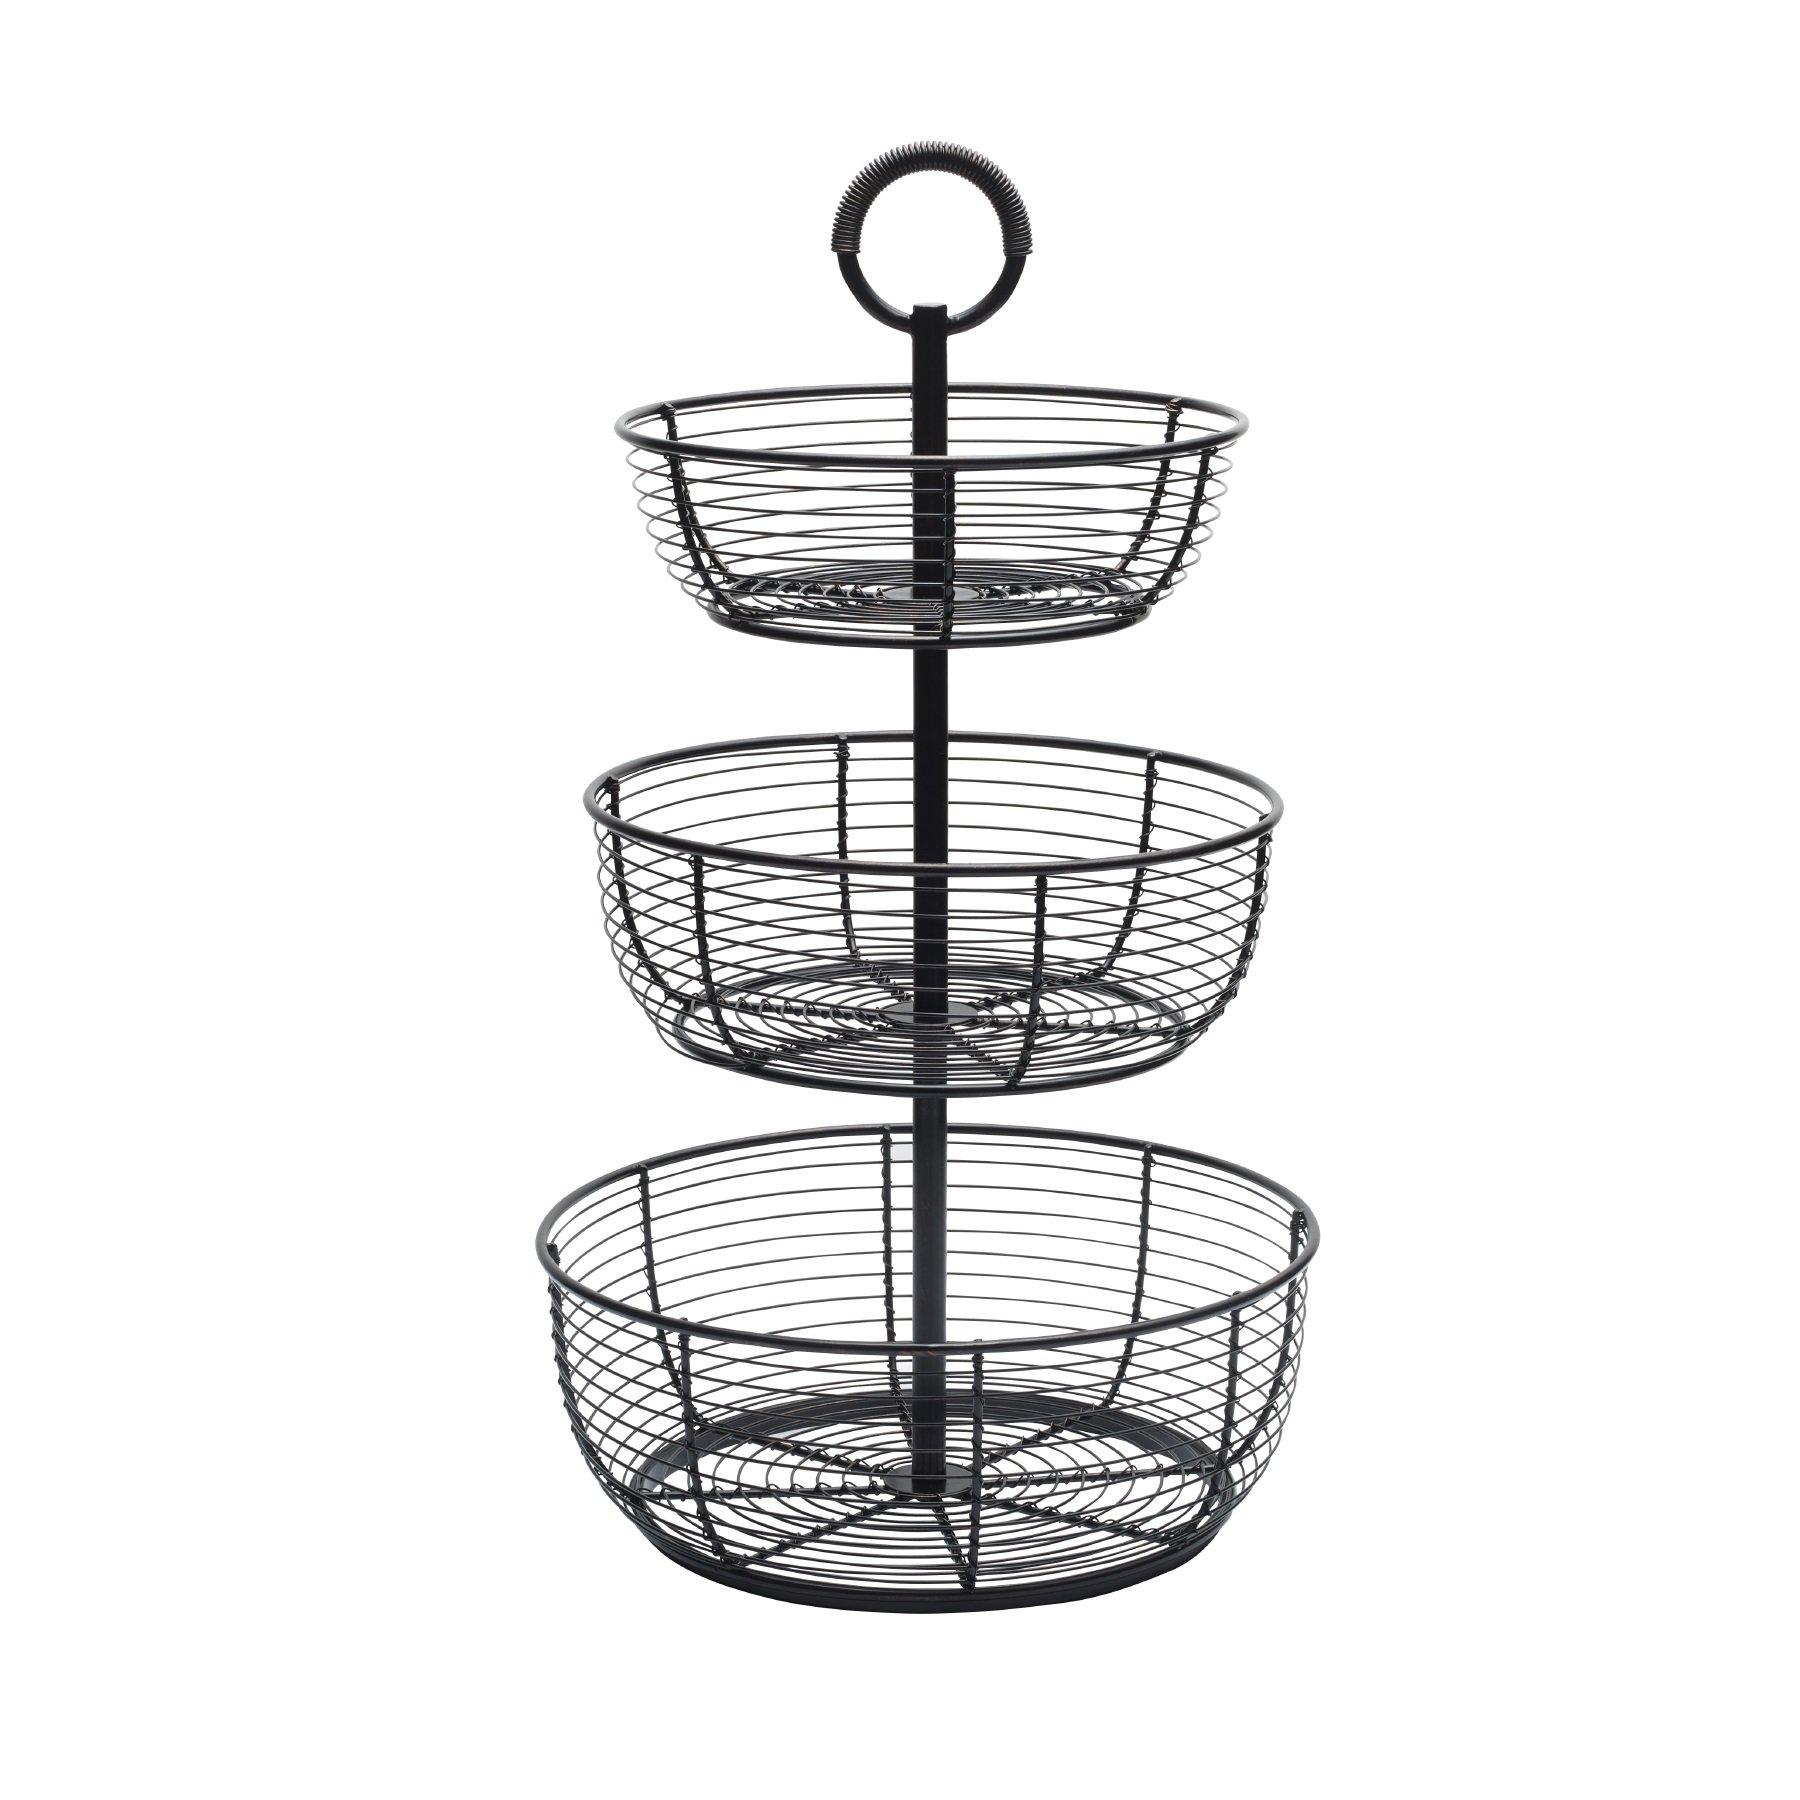 Gourmet Basics by Mikasa 5216454 Round Wrap 3-Tier Metal Floor Standing Fruit/Home Storage Basket, Antique Black by Gourmet Basics by Mikasa